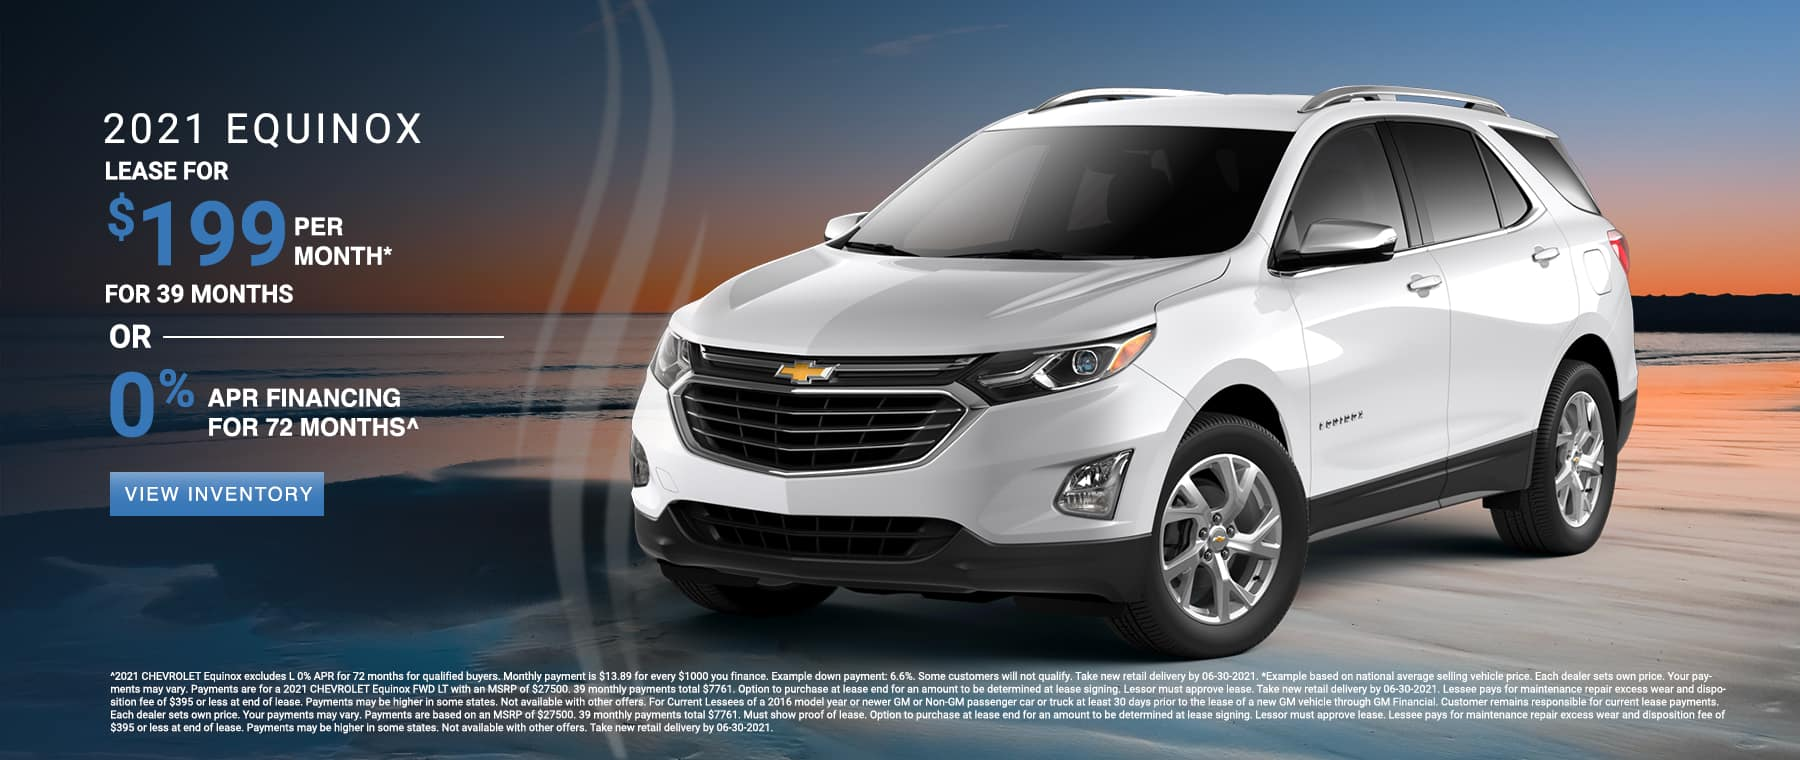 Lease a new 2021 Chevy Equinox for $199 per month. See dealer for details.